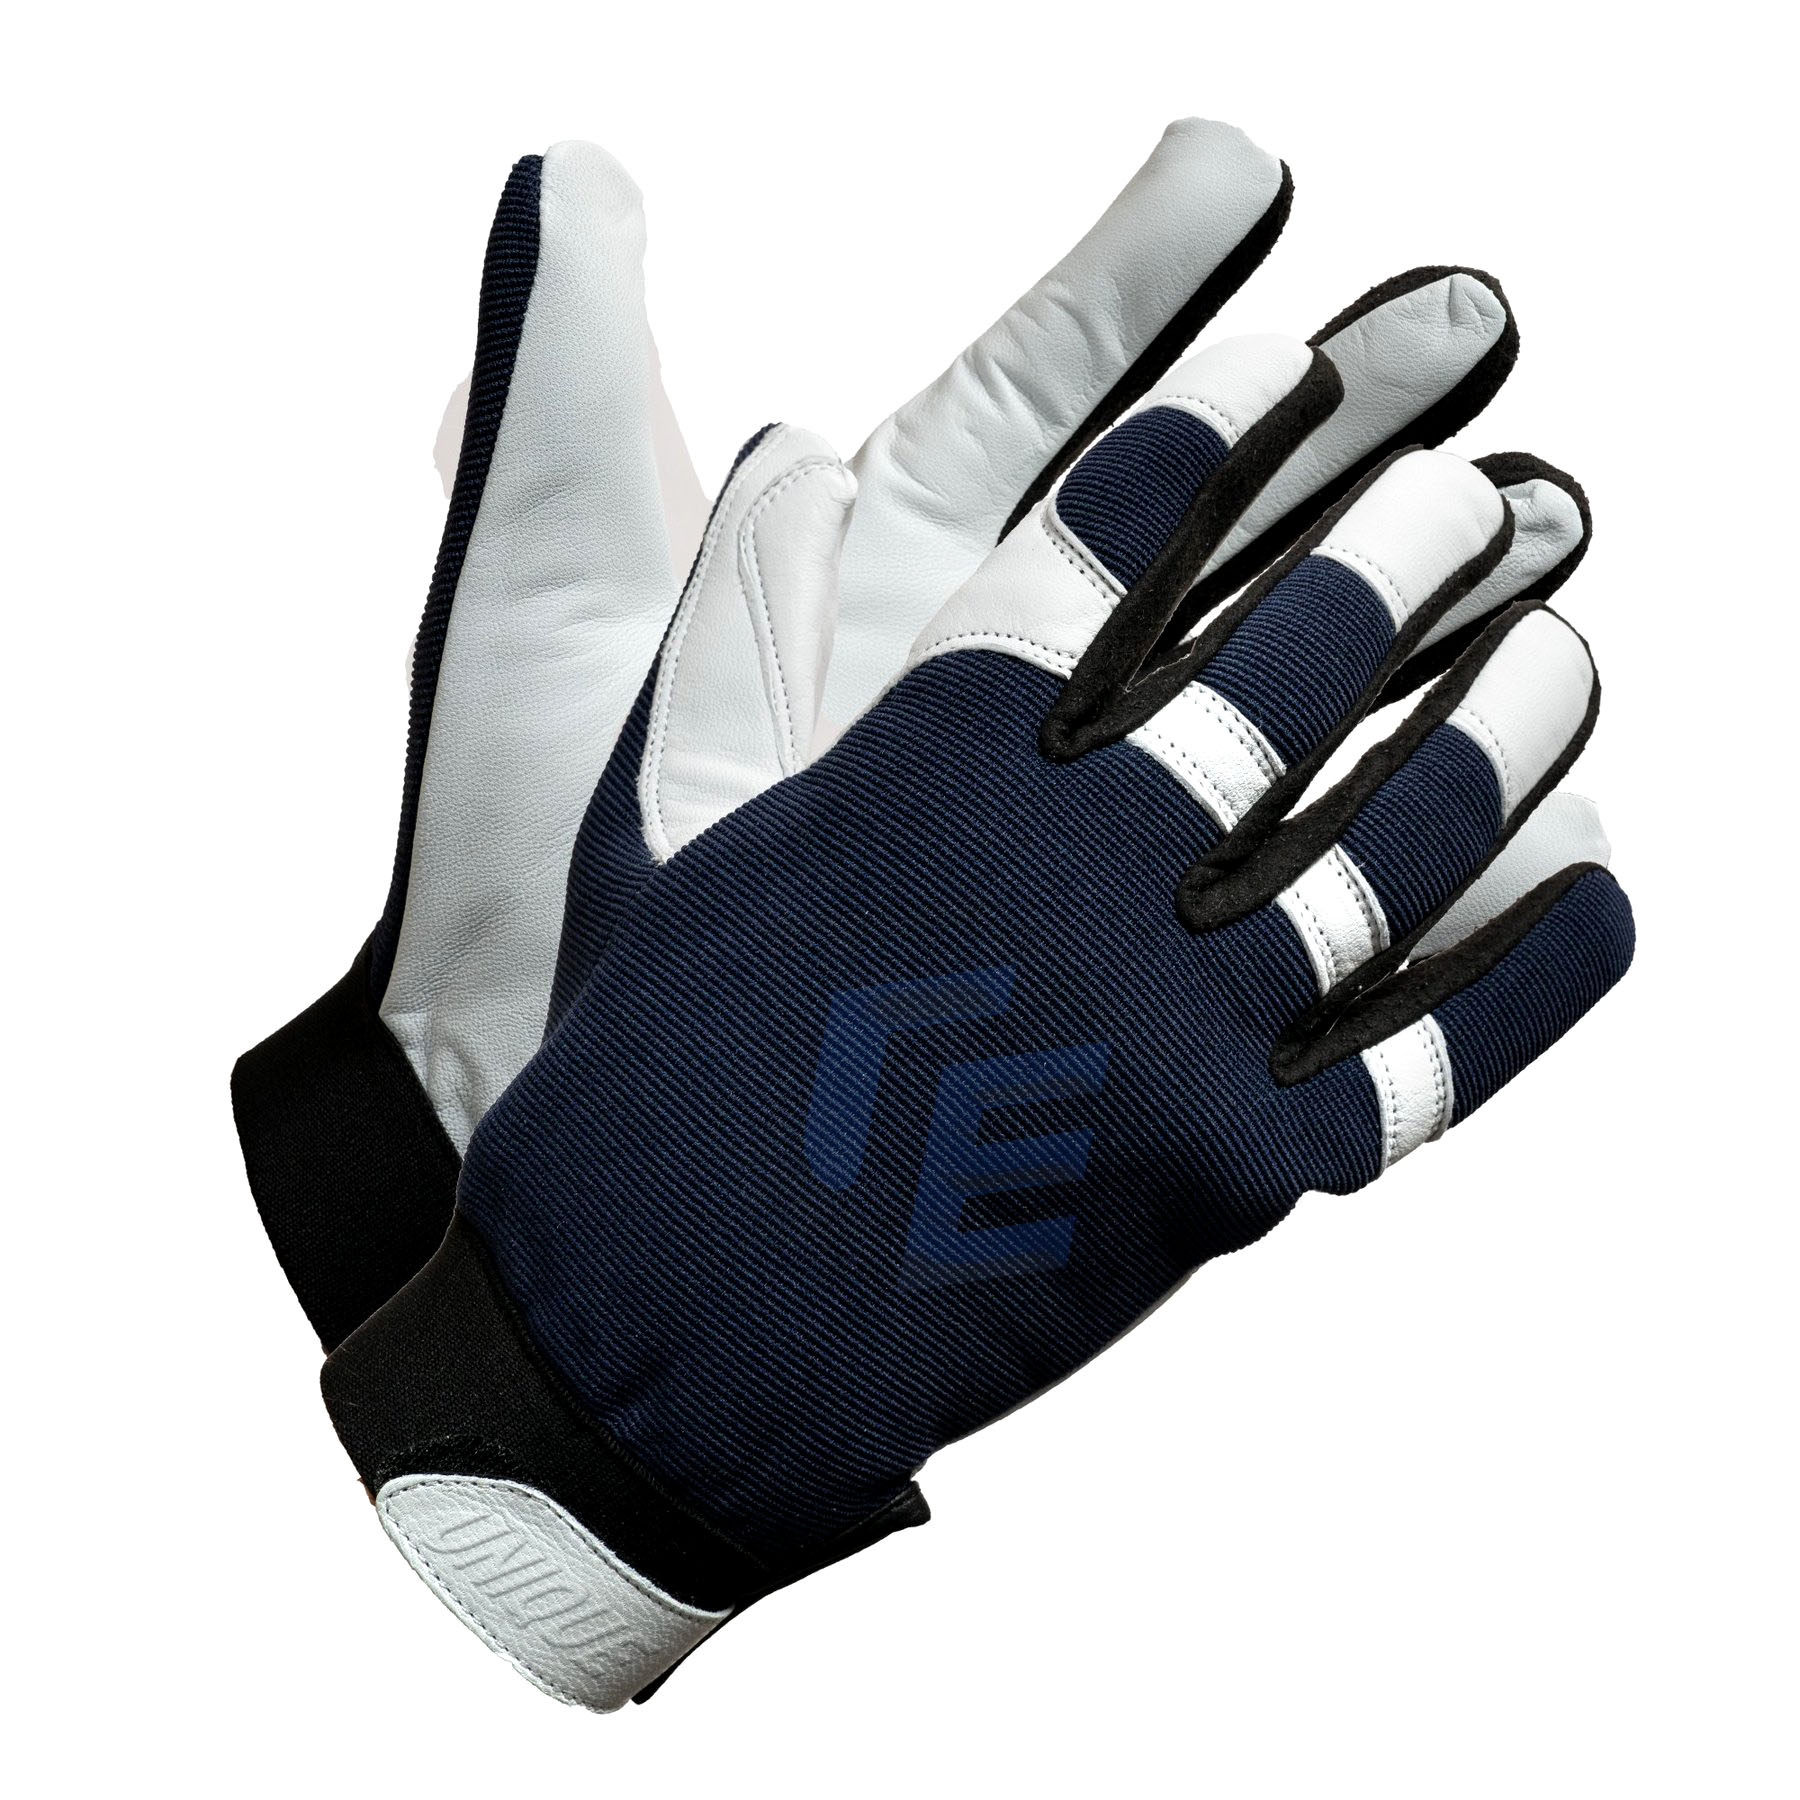 Natural Goat Skin Leather Assembly Glove With Spandex Back.